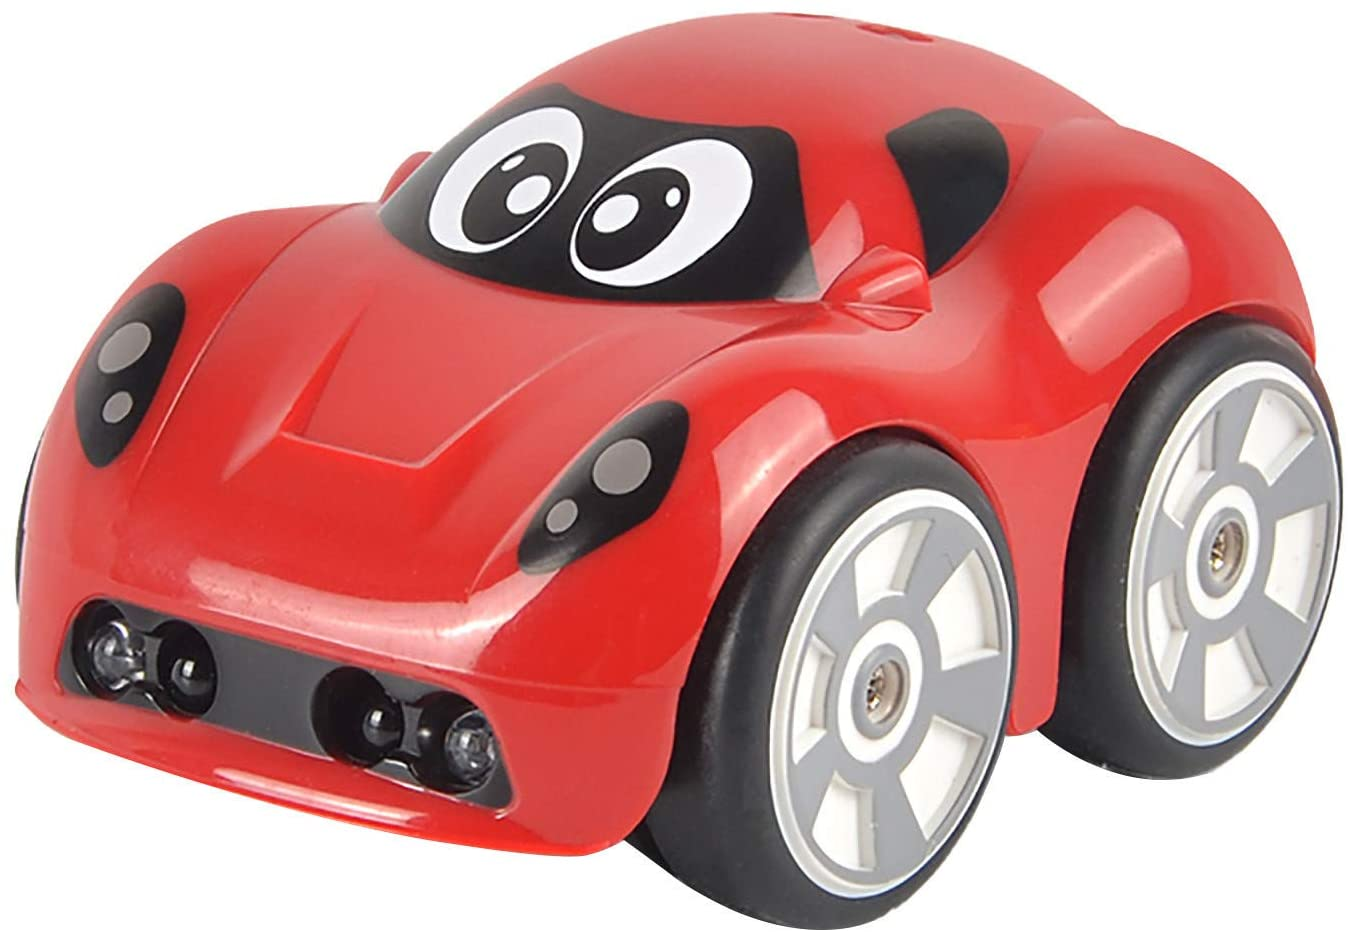 Remote Control Car, Electric Magic Hand Control Car Induction Follow Toy, Kids Toys (Red)